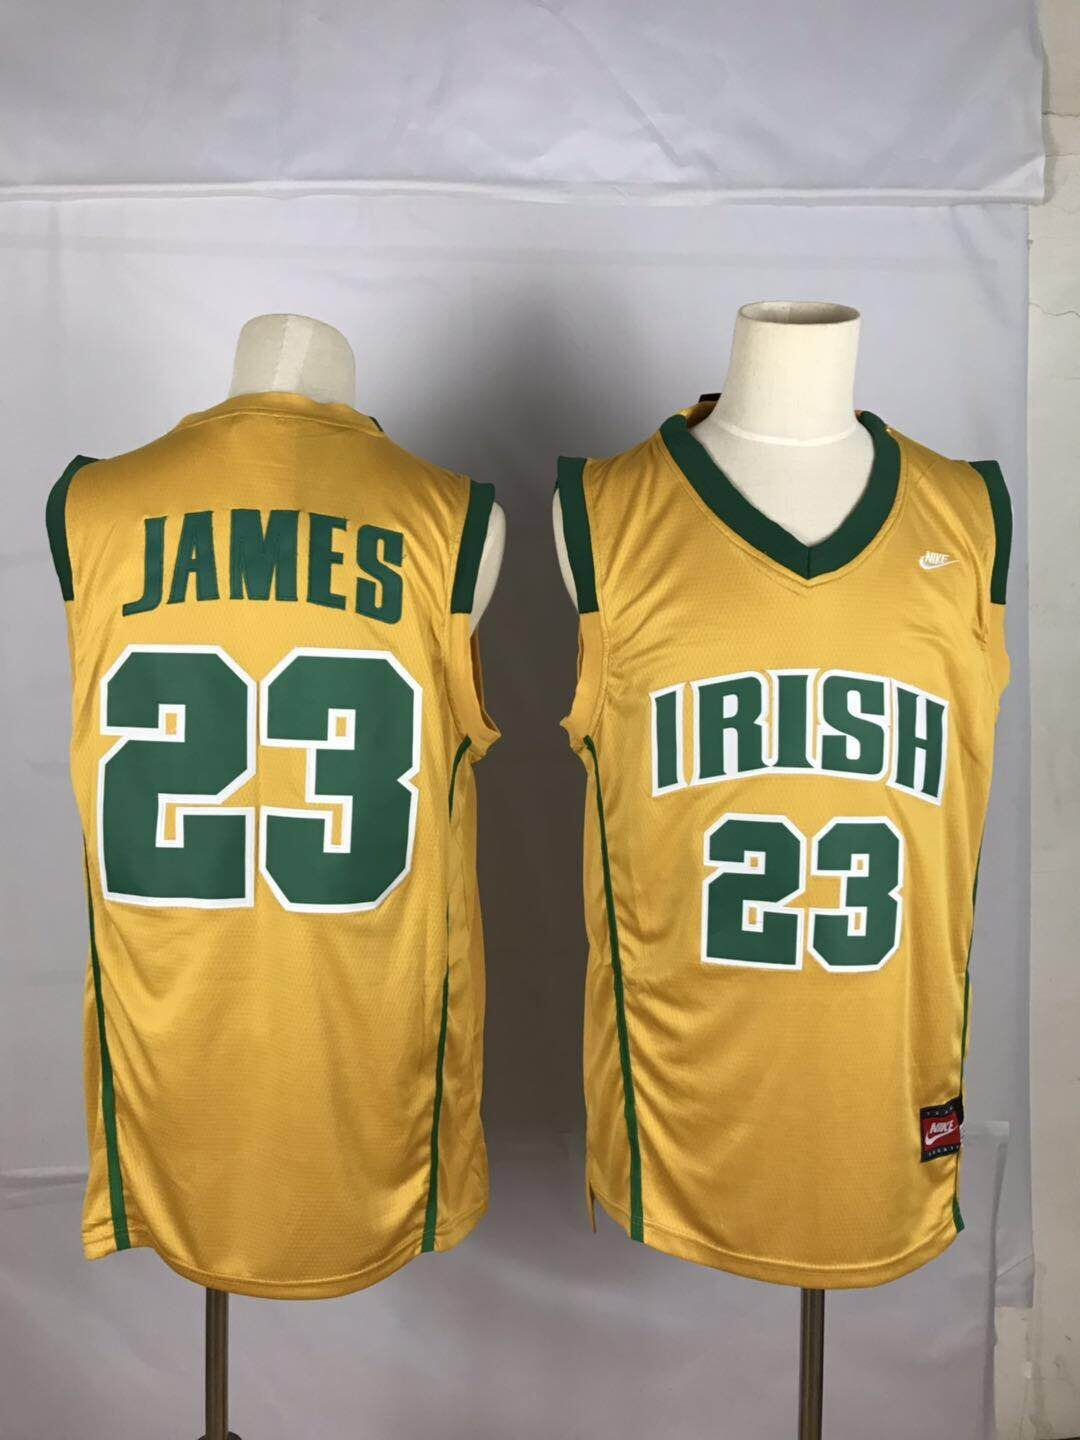 Irish High School 23 LeBron James Yellow Swingman Jersey